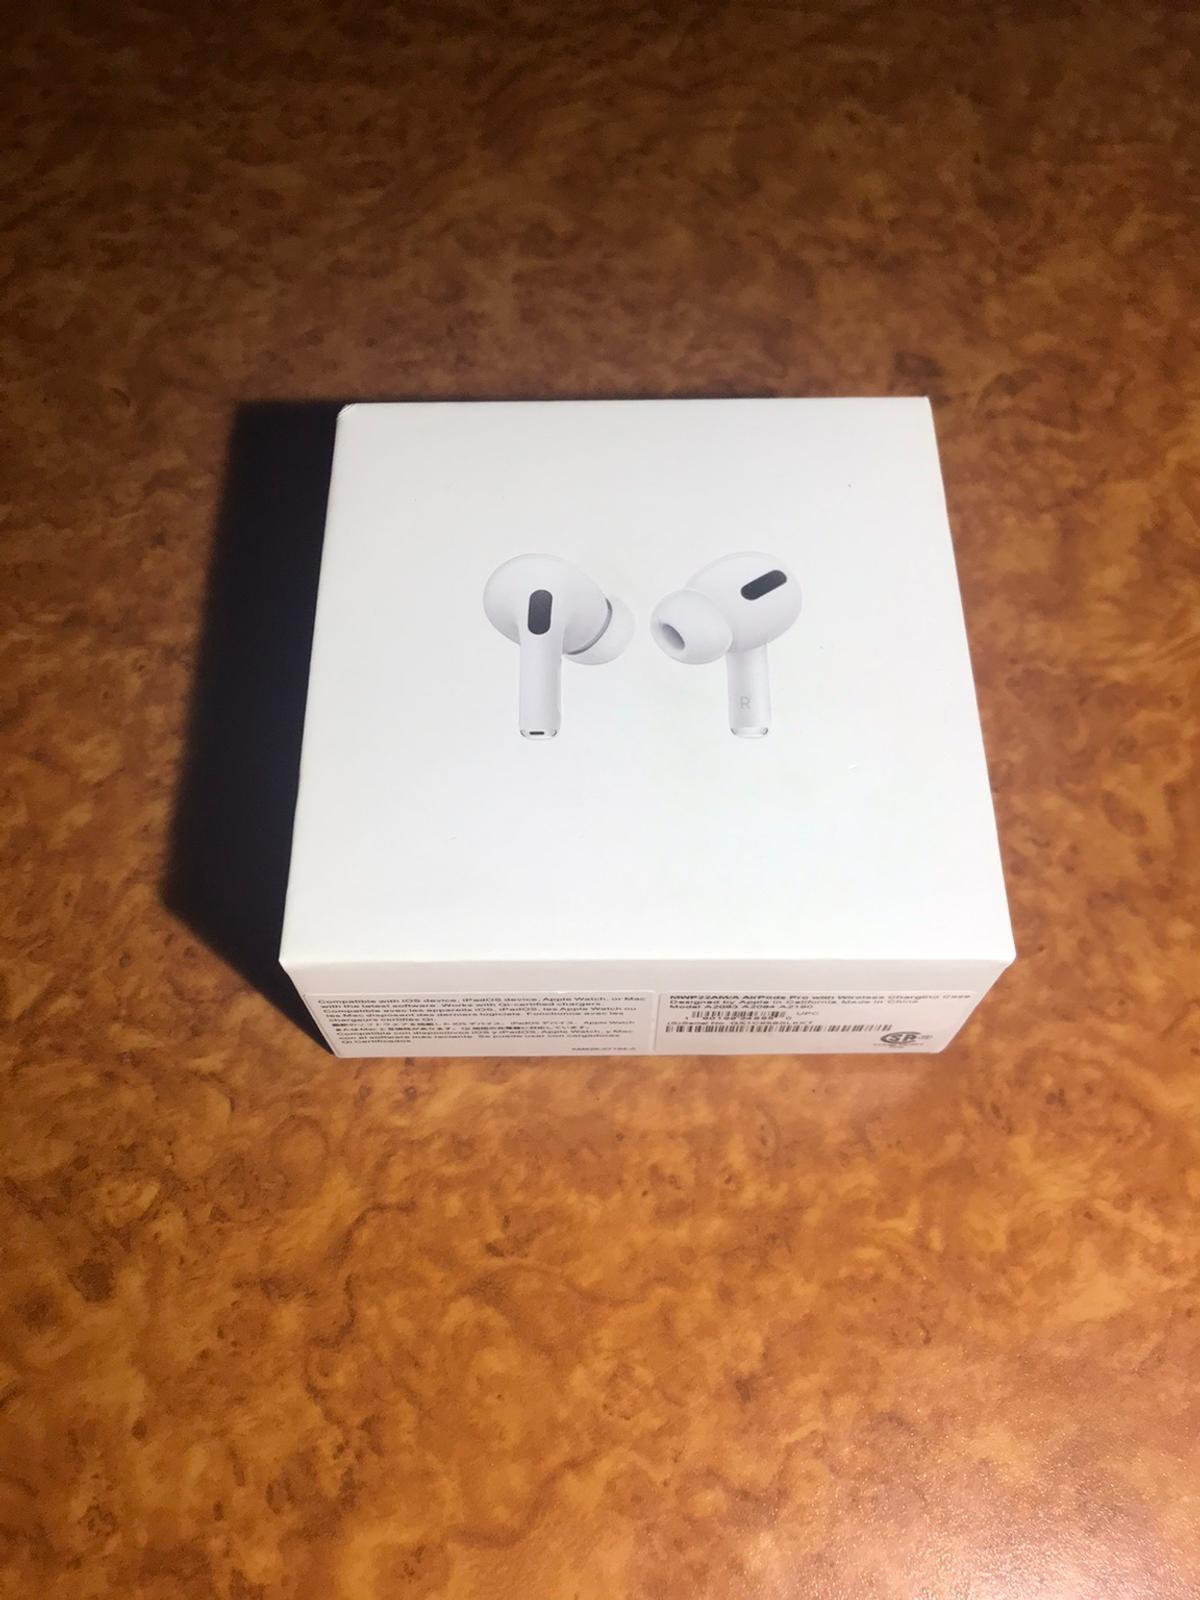 apple airpods pro box images